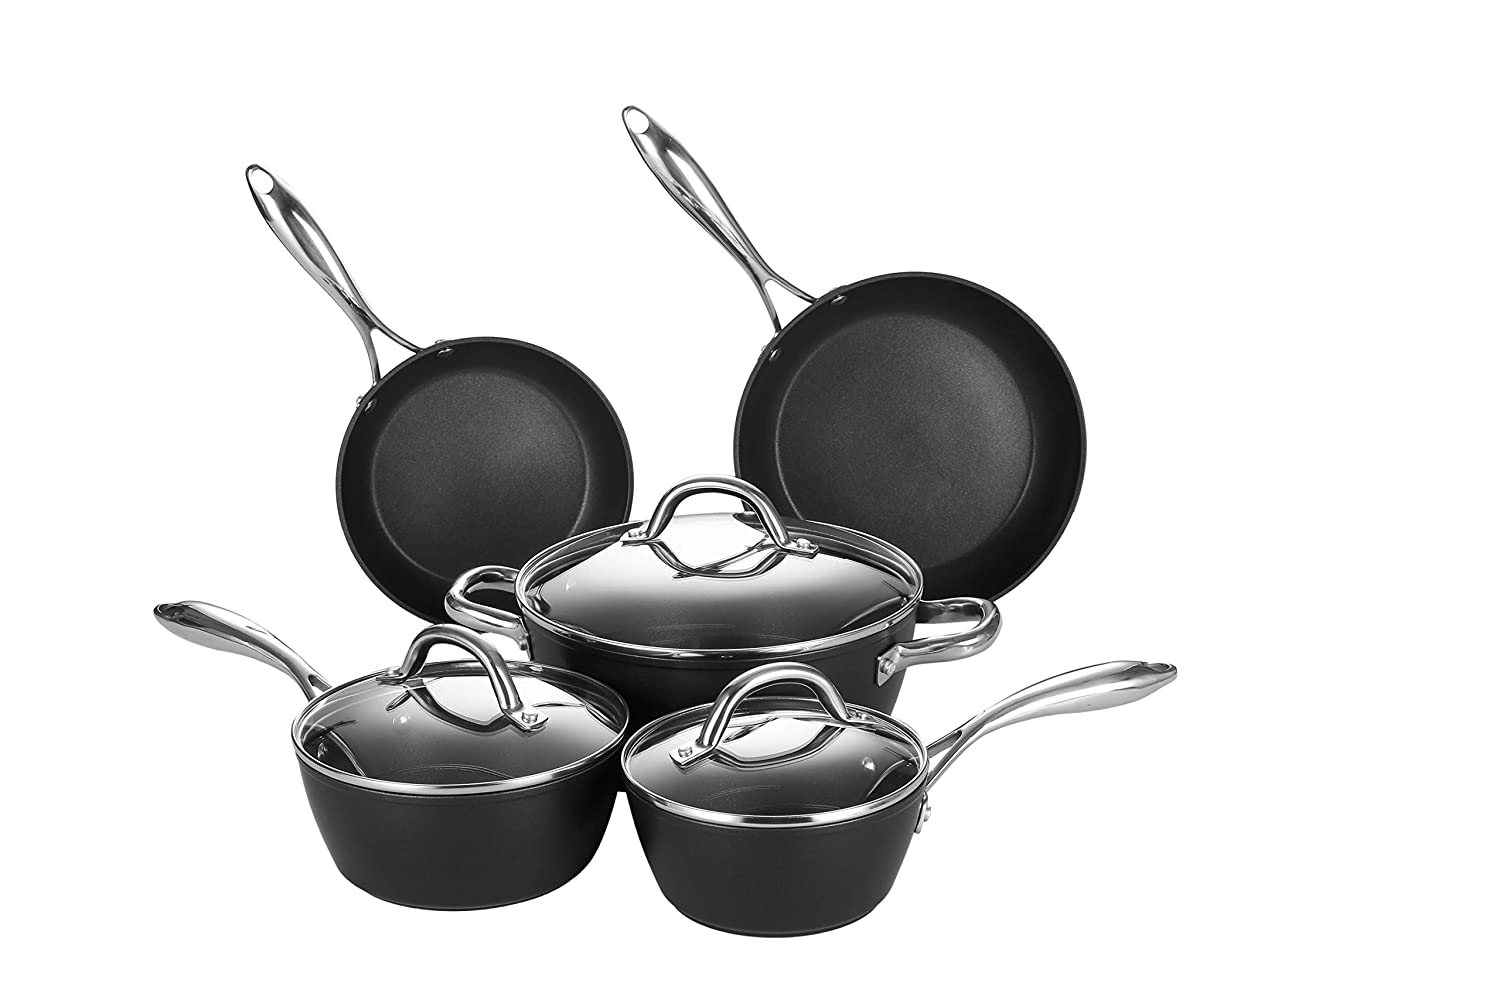 Forged Nonstick Pots and Pans Cookware Set, Stainless Steel Handles, Induction Ready, Dishwasher and Oven Safe, Fast Heating, Anti-Warp Base, 8-Piece by COOKER KING